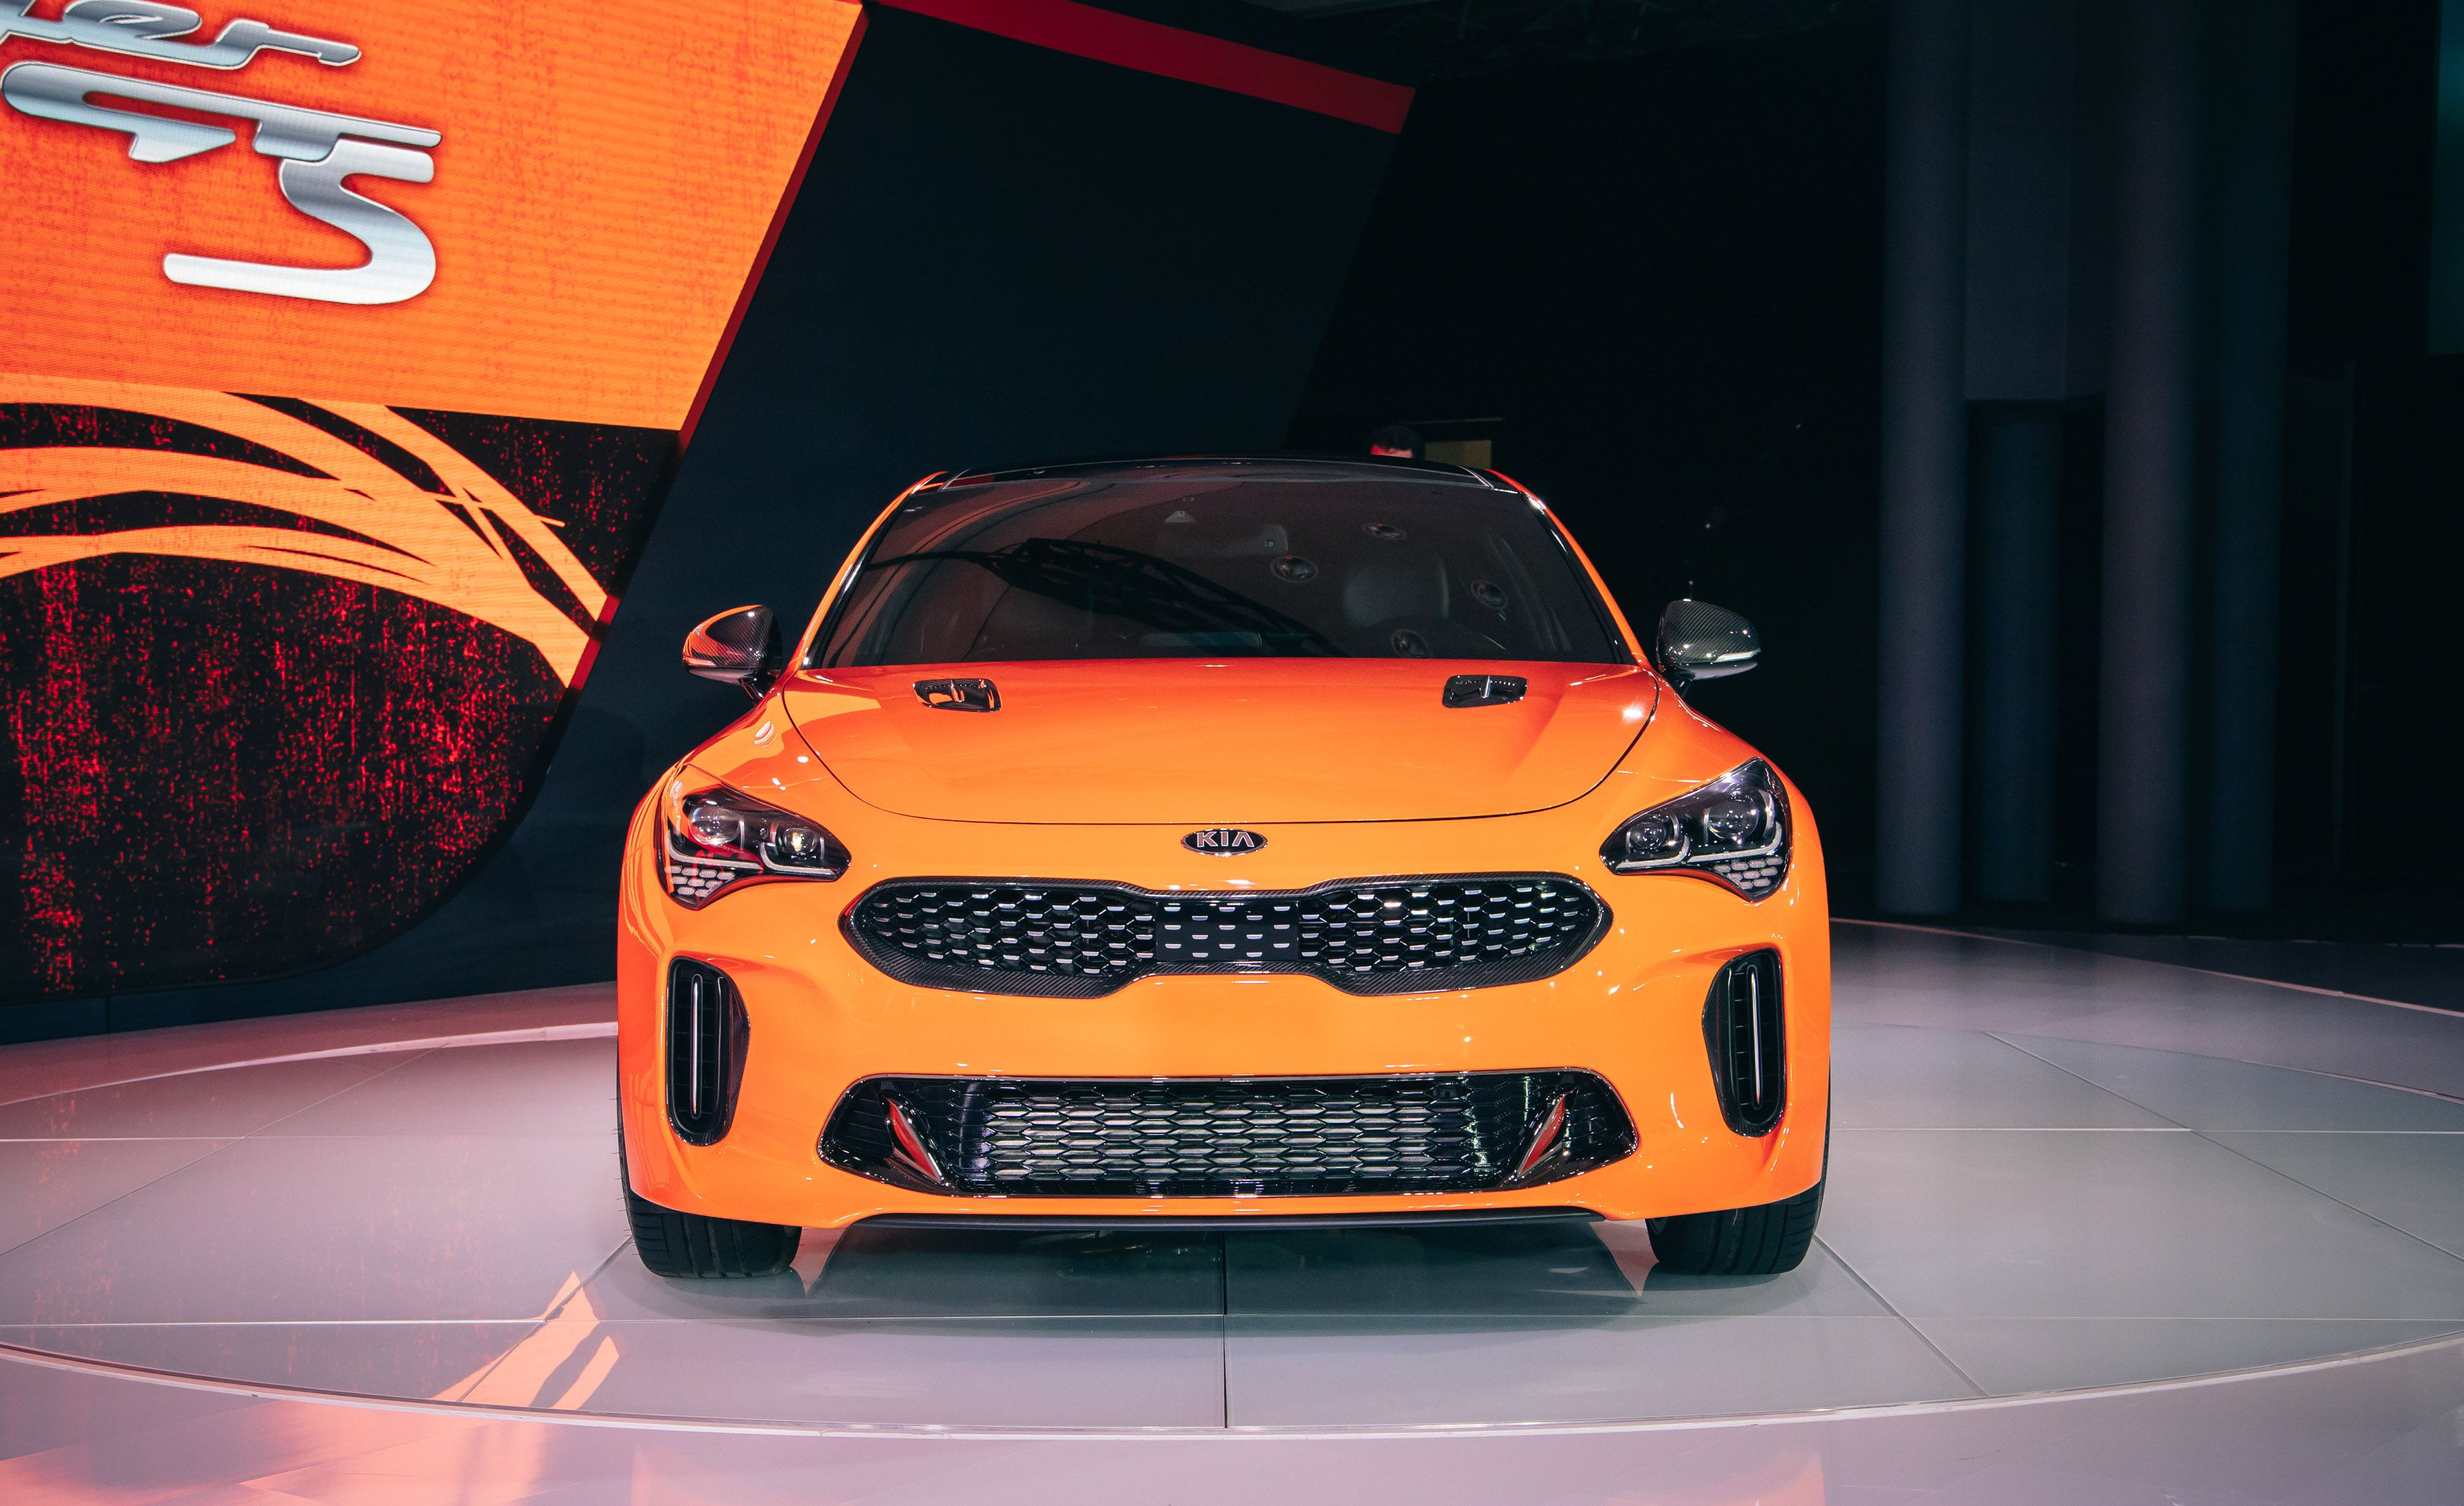 2020 Kia Stinger GTS front end